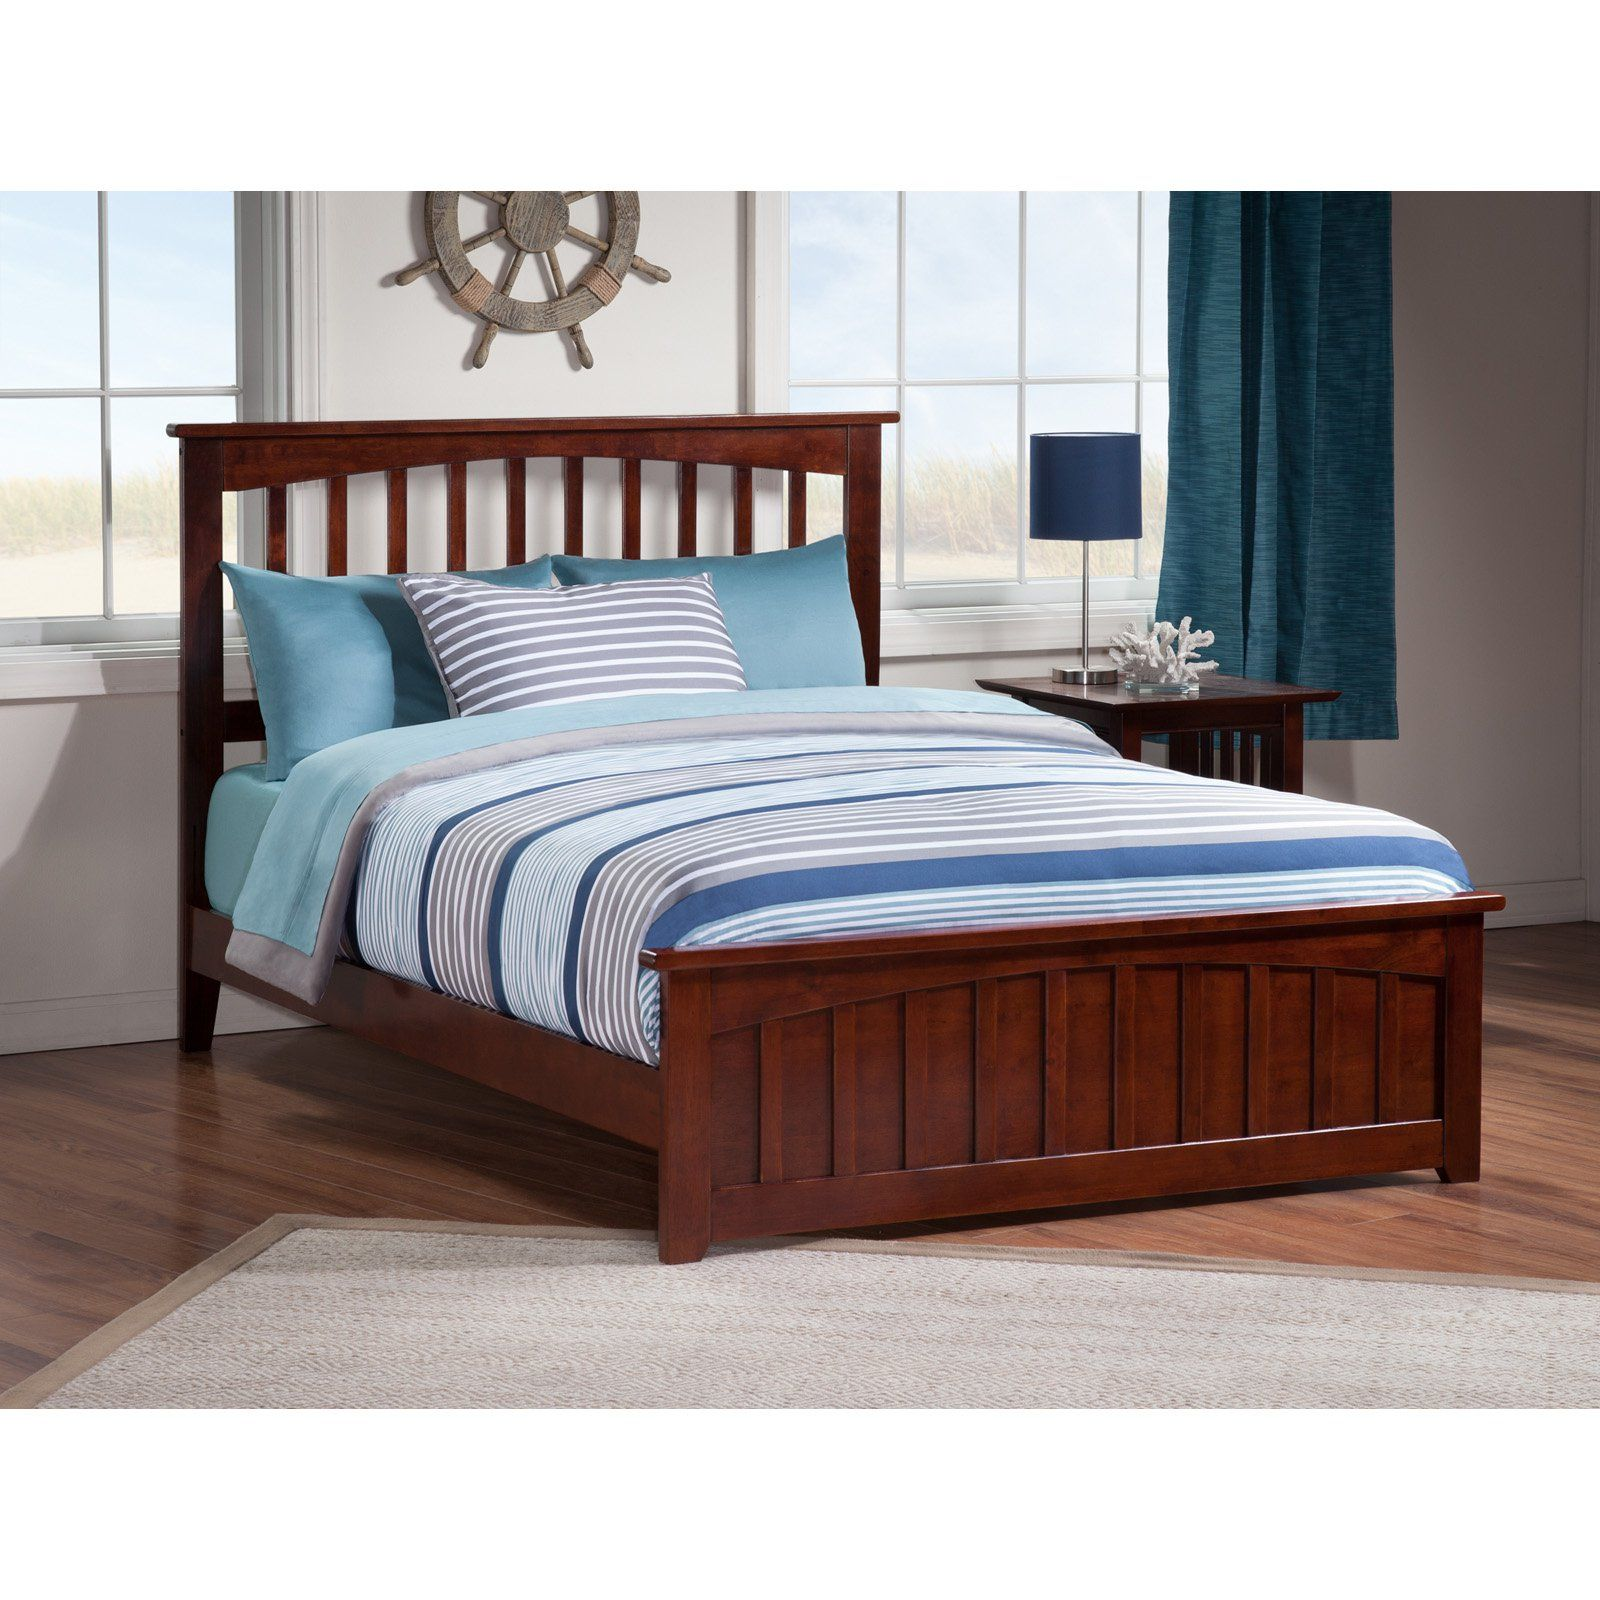 Atlantic Furniture Mission Bed With Matching Footboard Atlantic